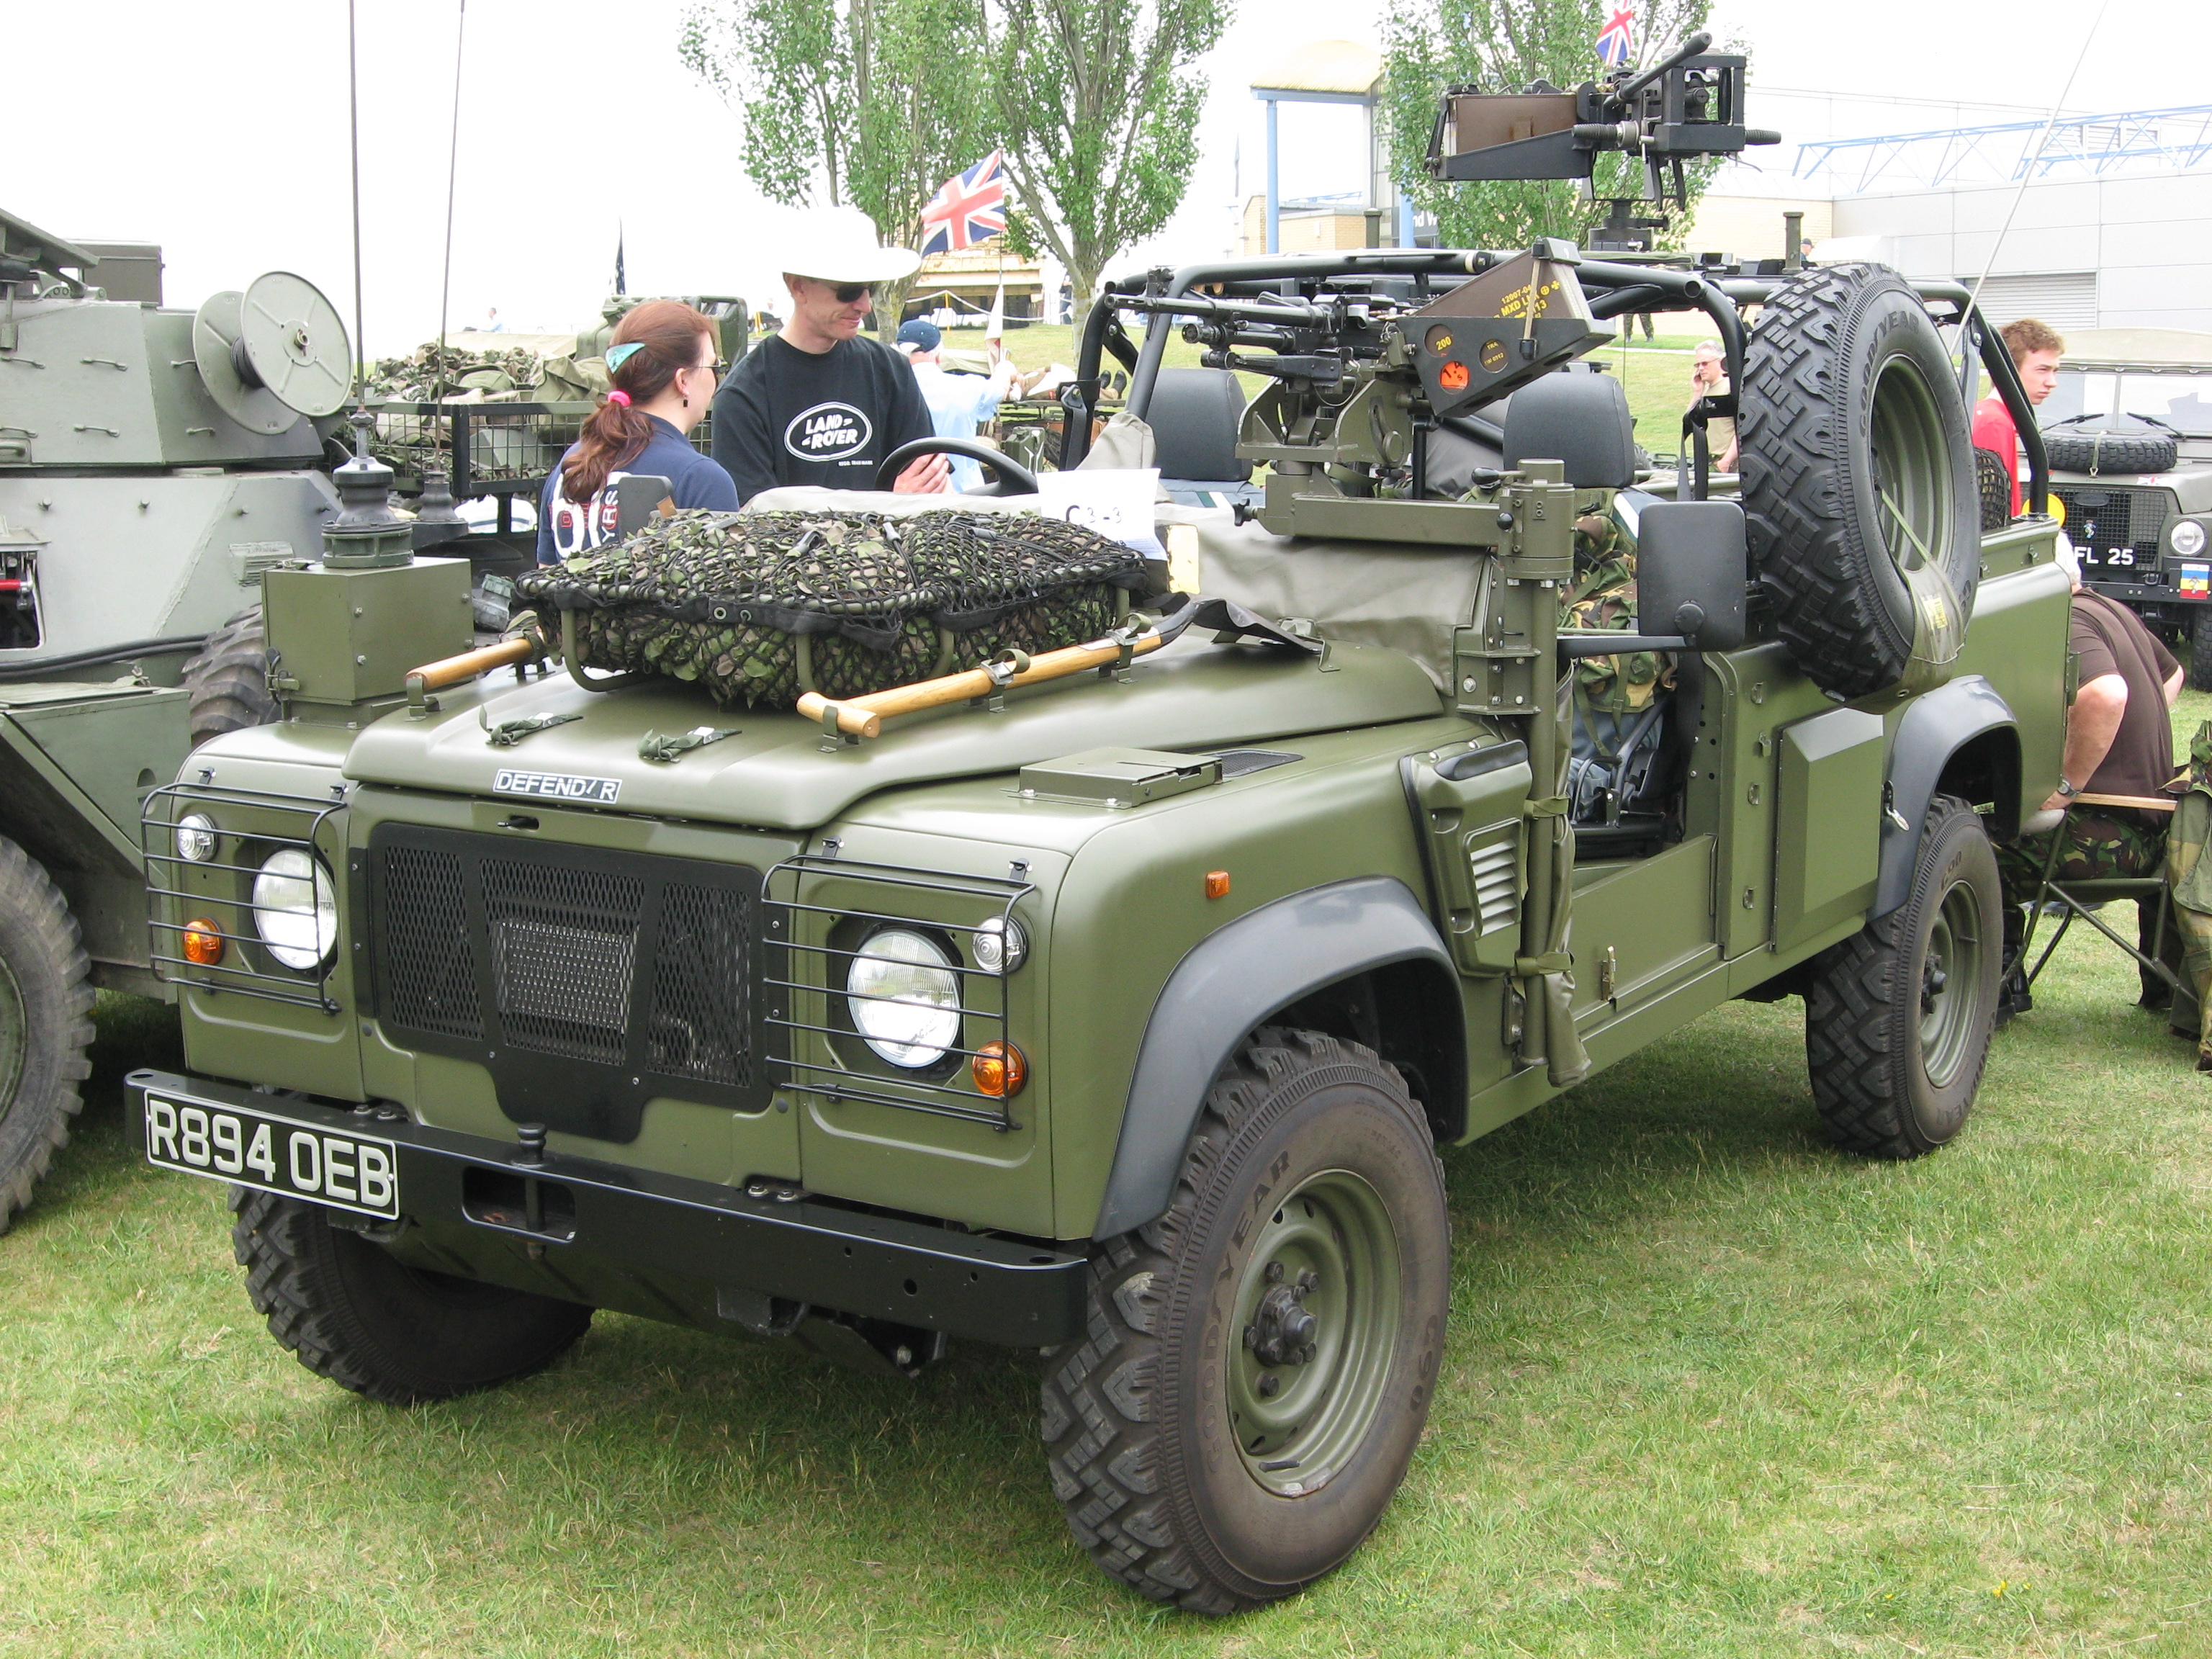 Duxford Military Vehicle Show June 2010 Land Rover